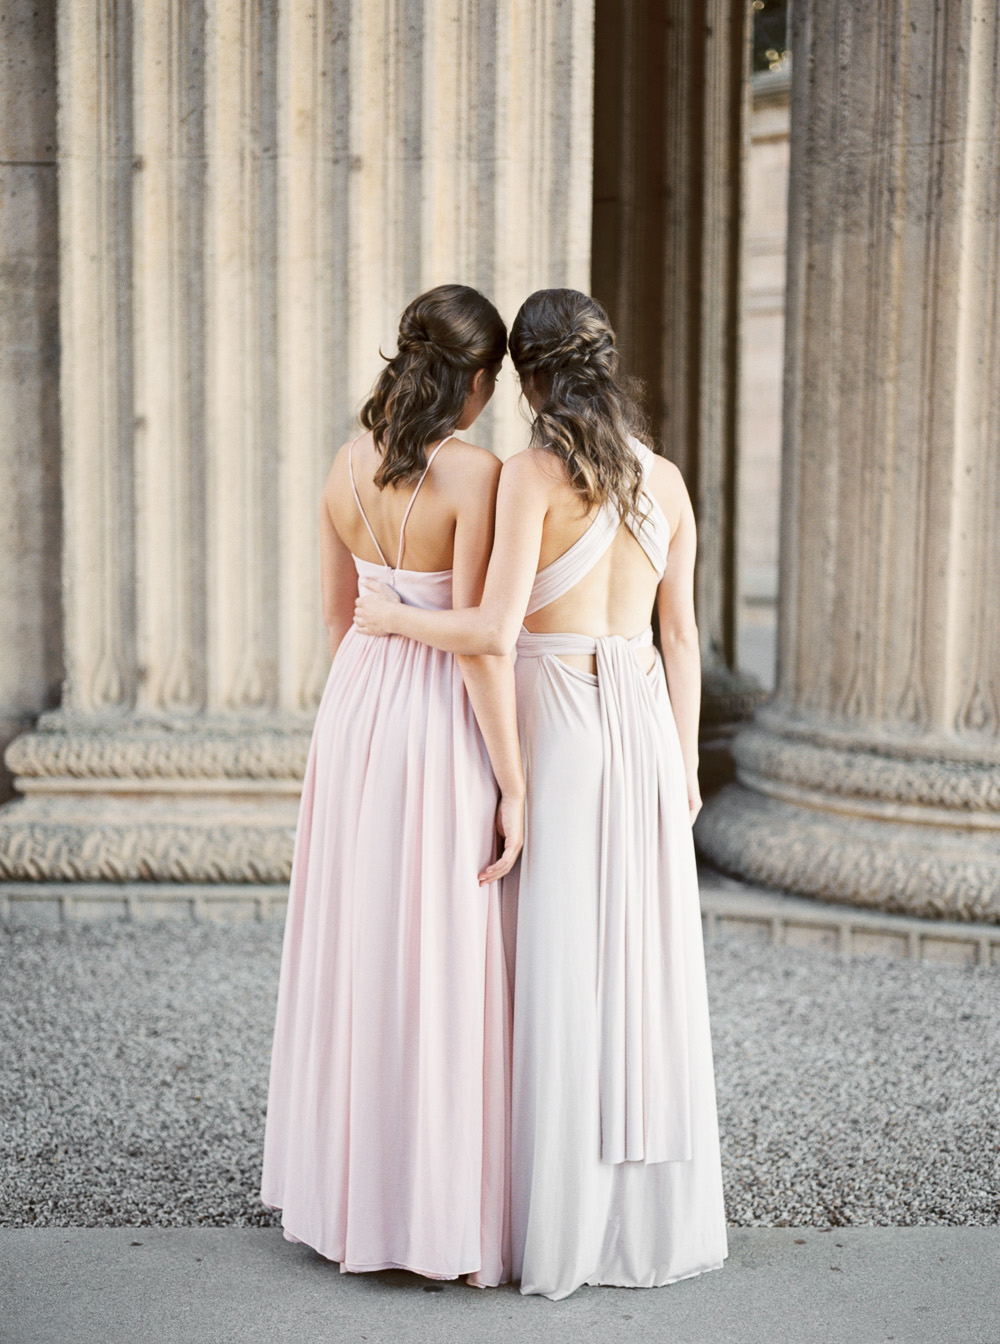 Weddington Way blush pink bridesmaid dress | by Lara Lam photography